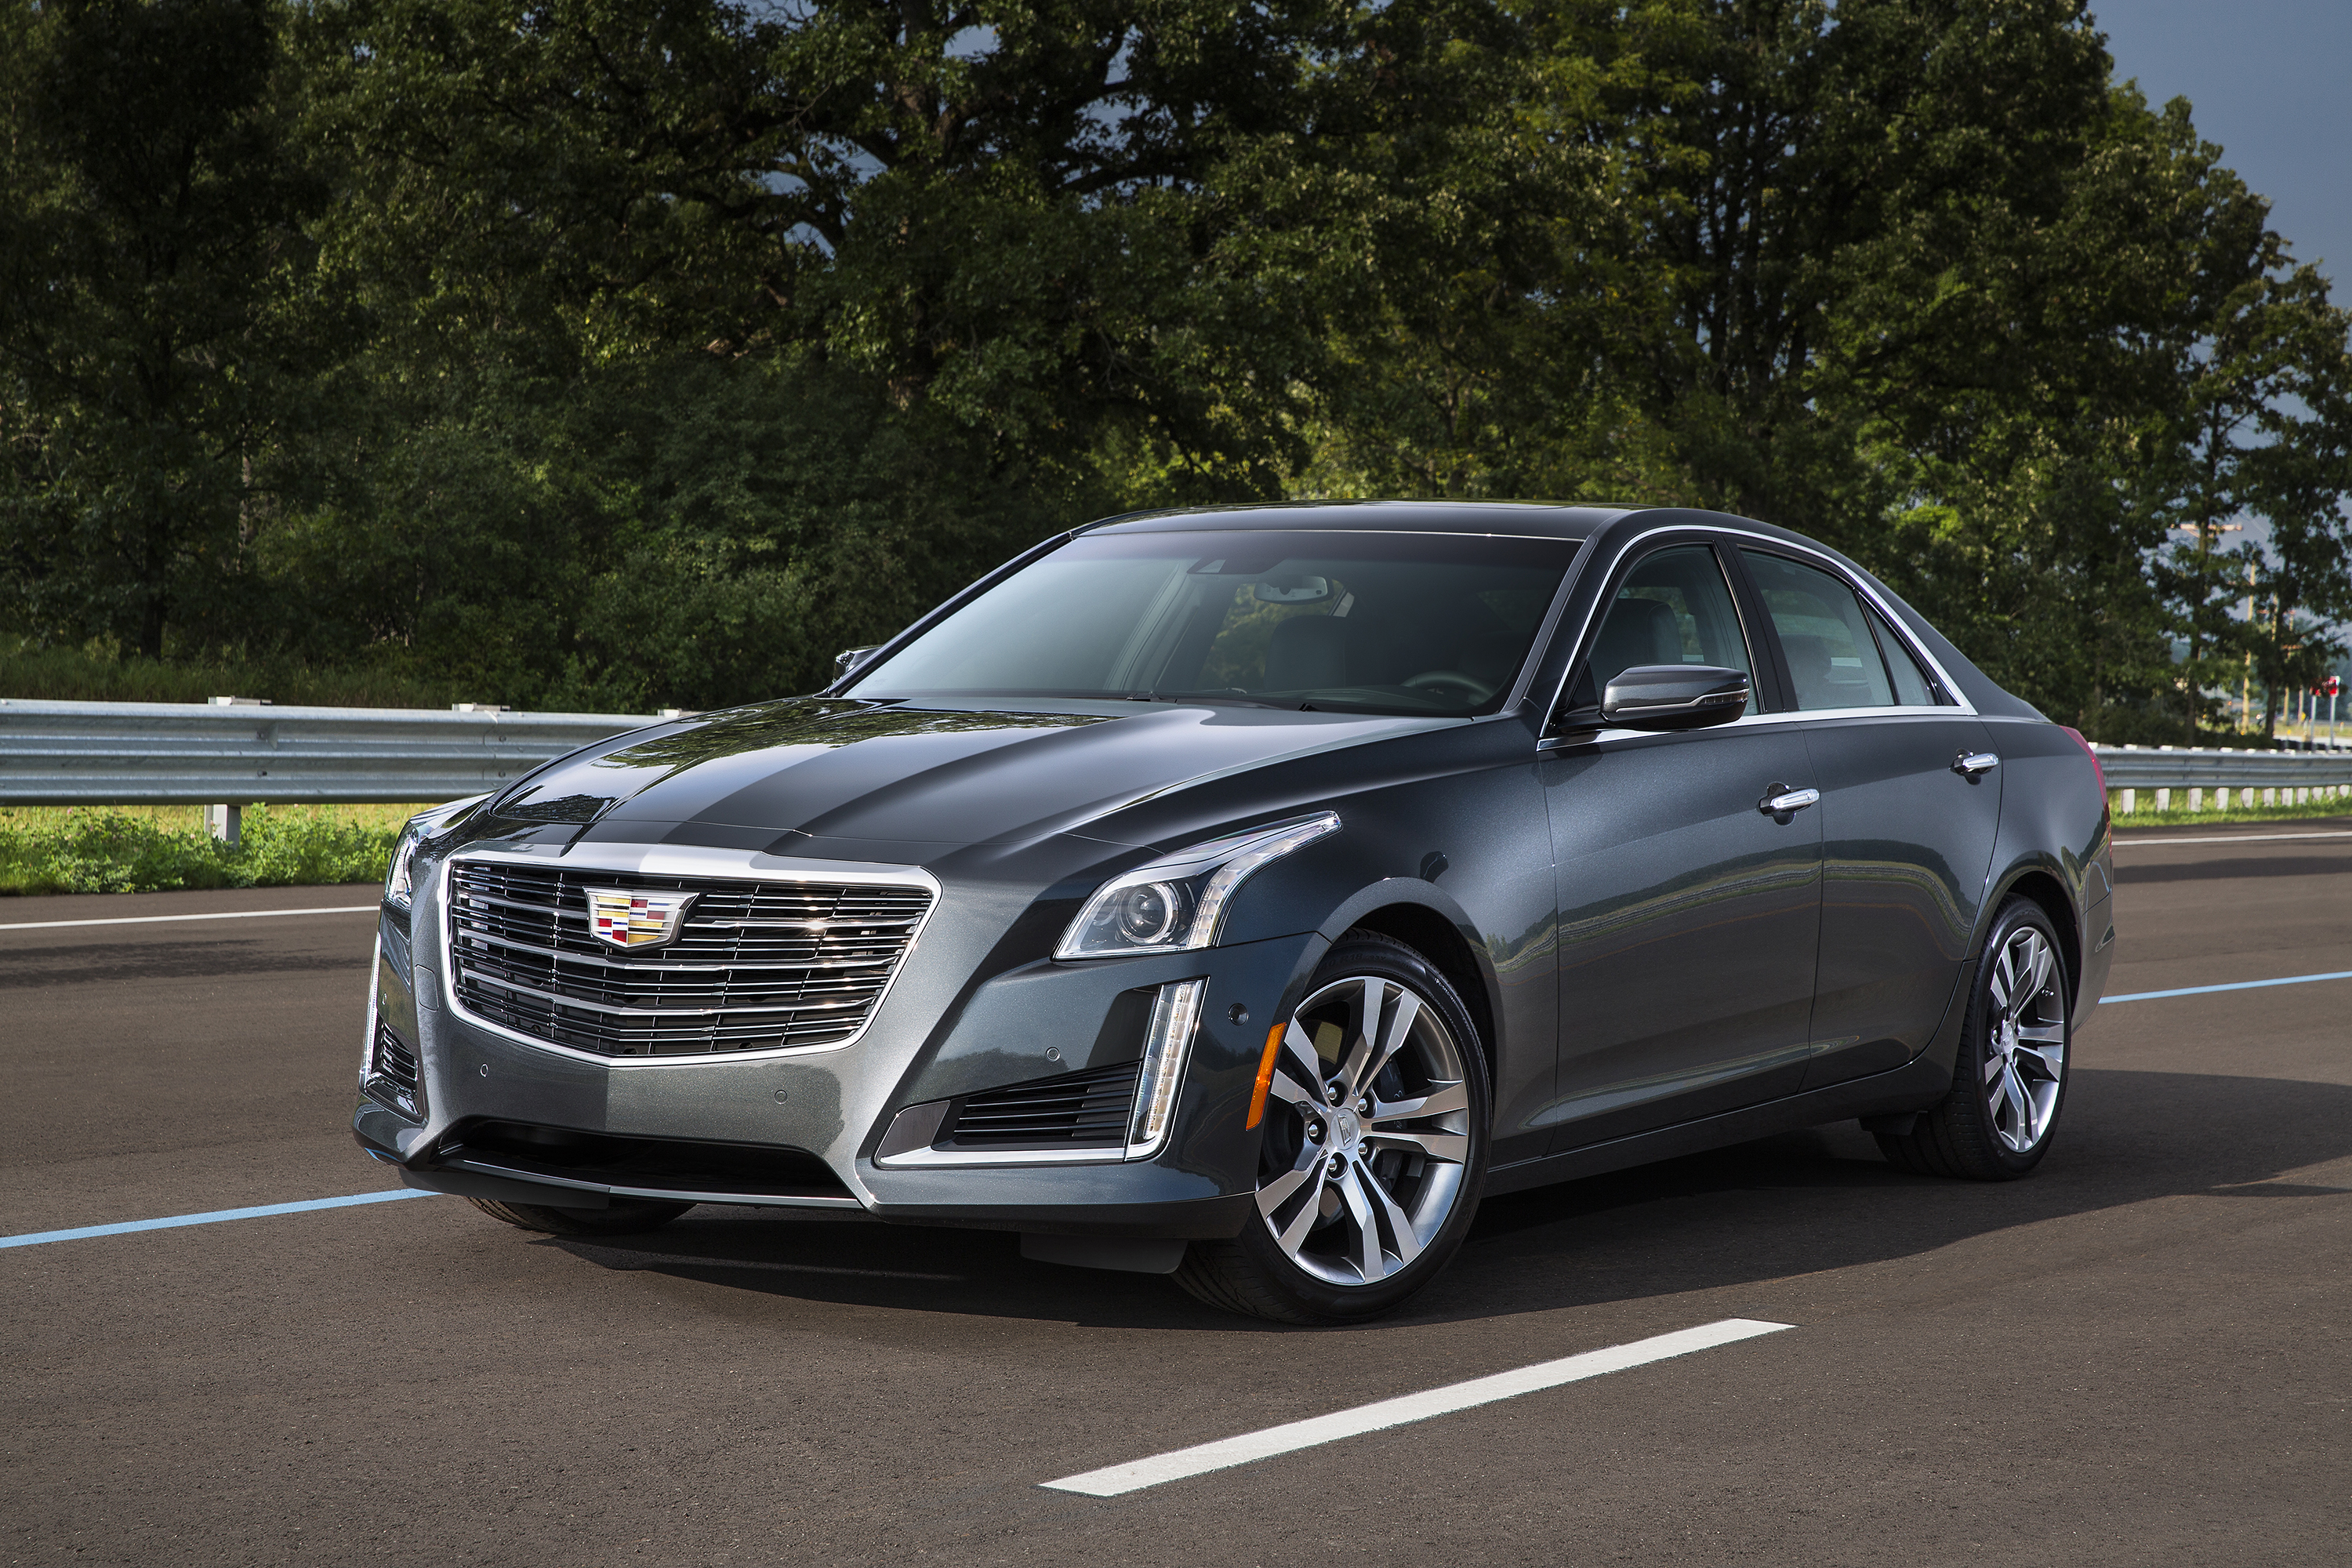 ca reviews specs trims price autotrader research options photos cadillac cts